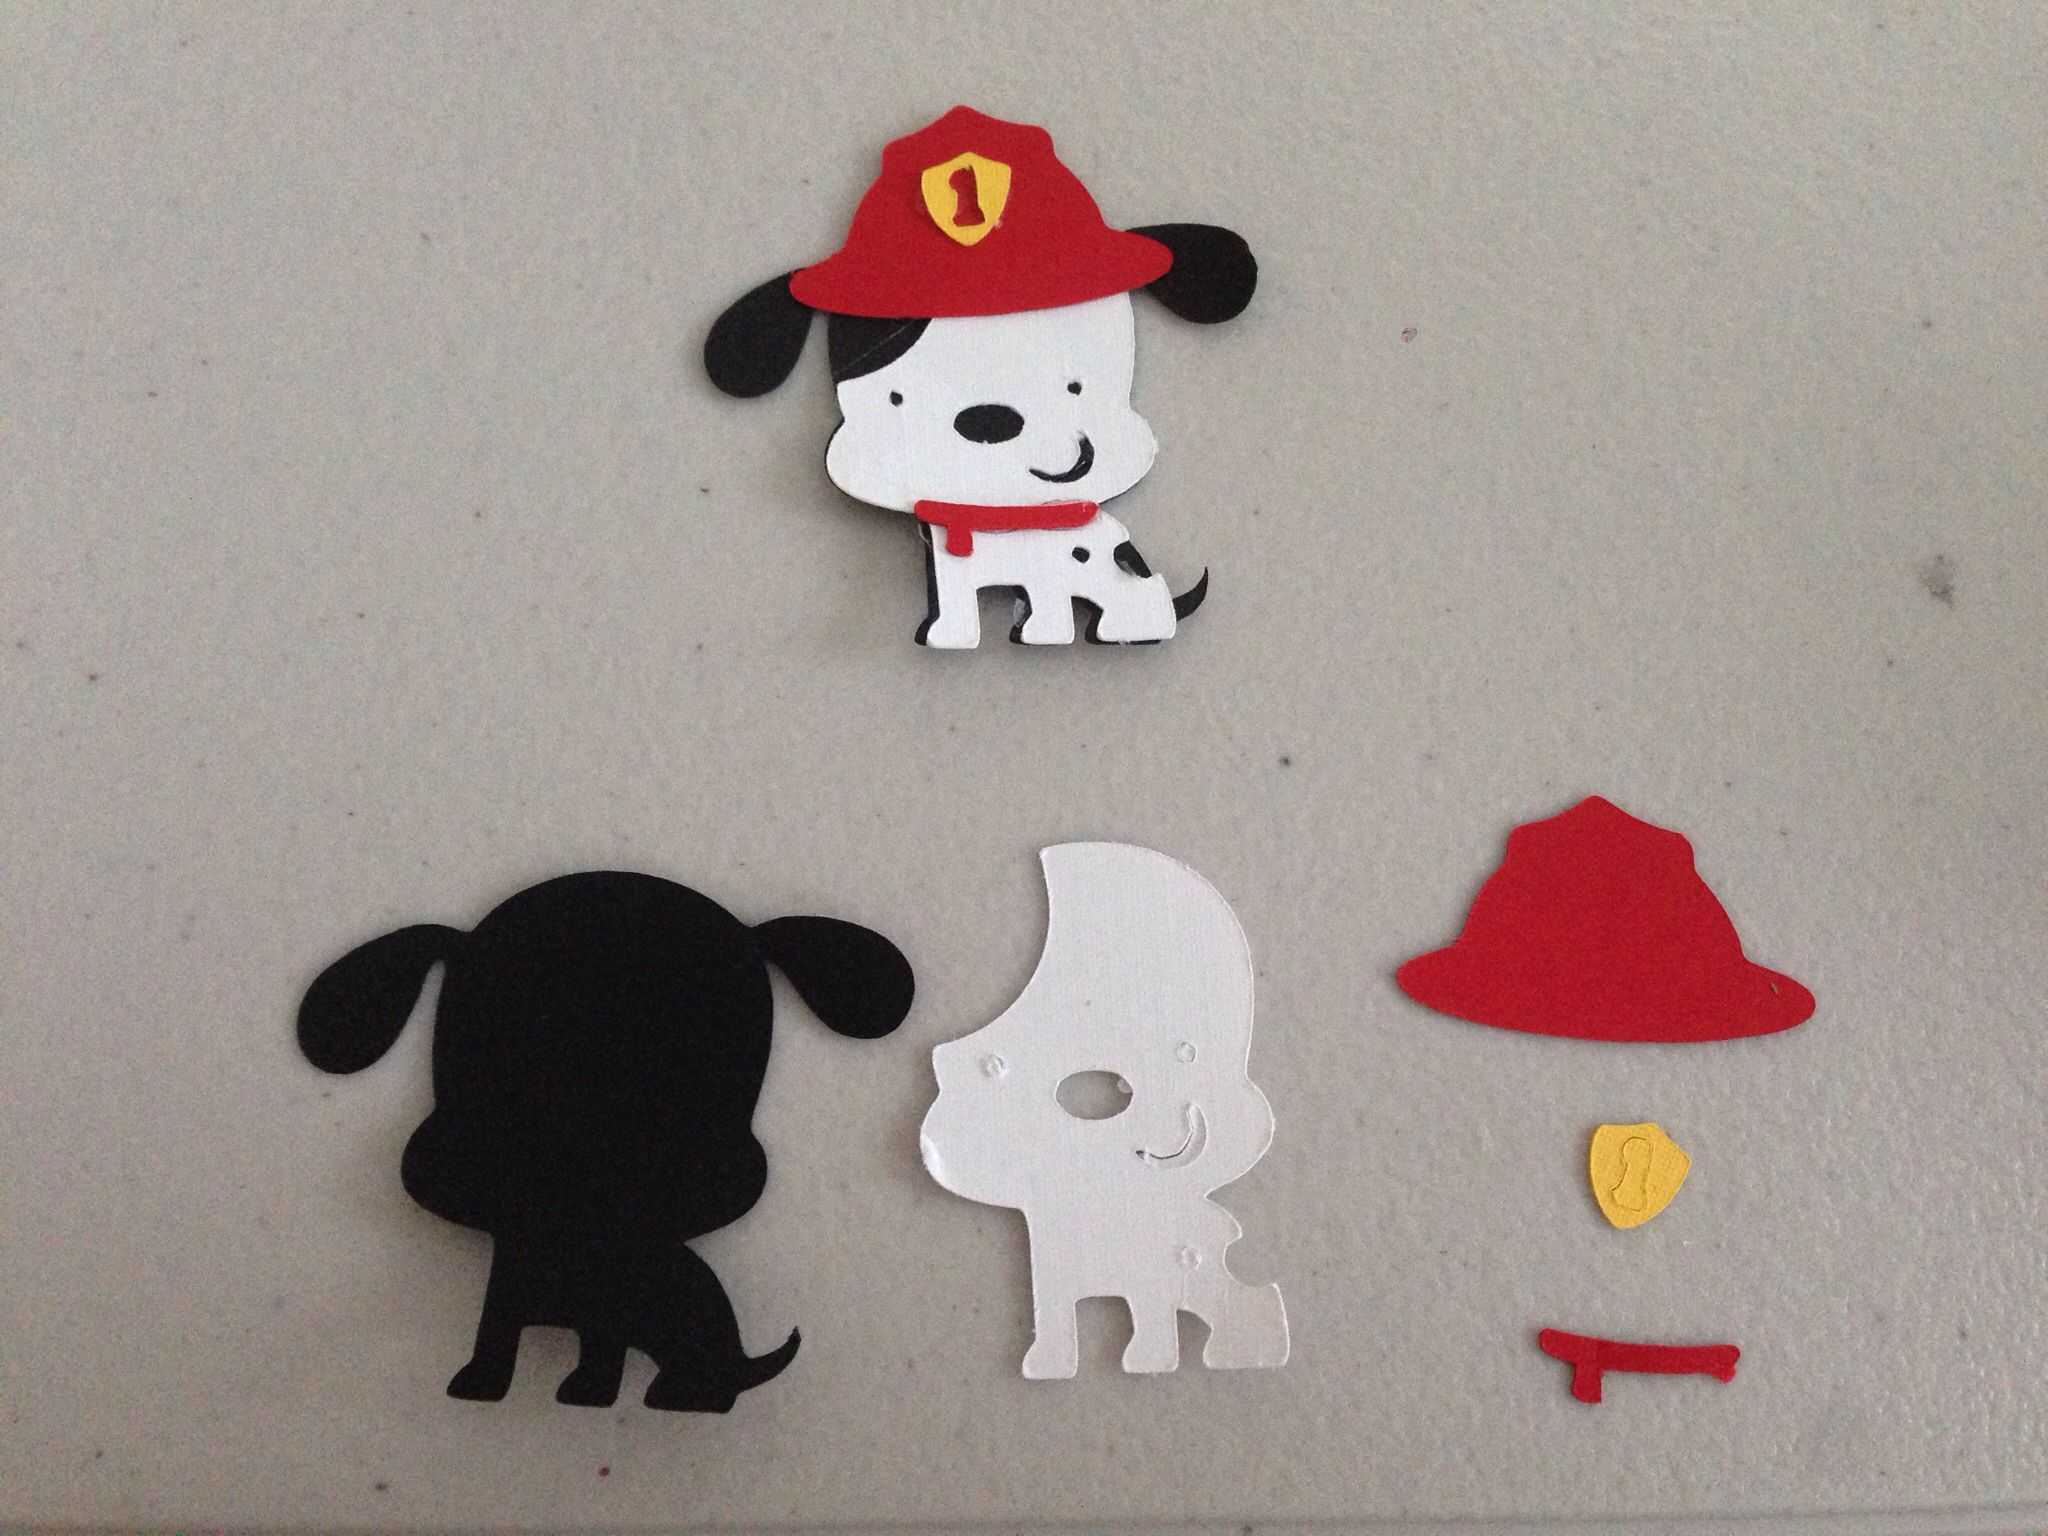 Pin By Mandie Garcia Lew On Cricut Fireman Party Fire Fighter Birthday Party Silhouette Cameo Crafts [ 1536 x 2048 Pixel ]